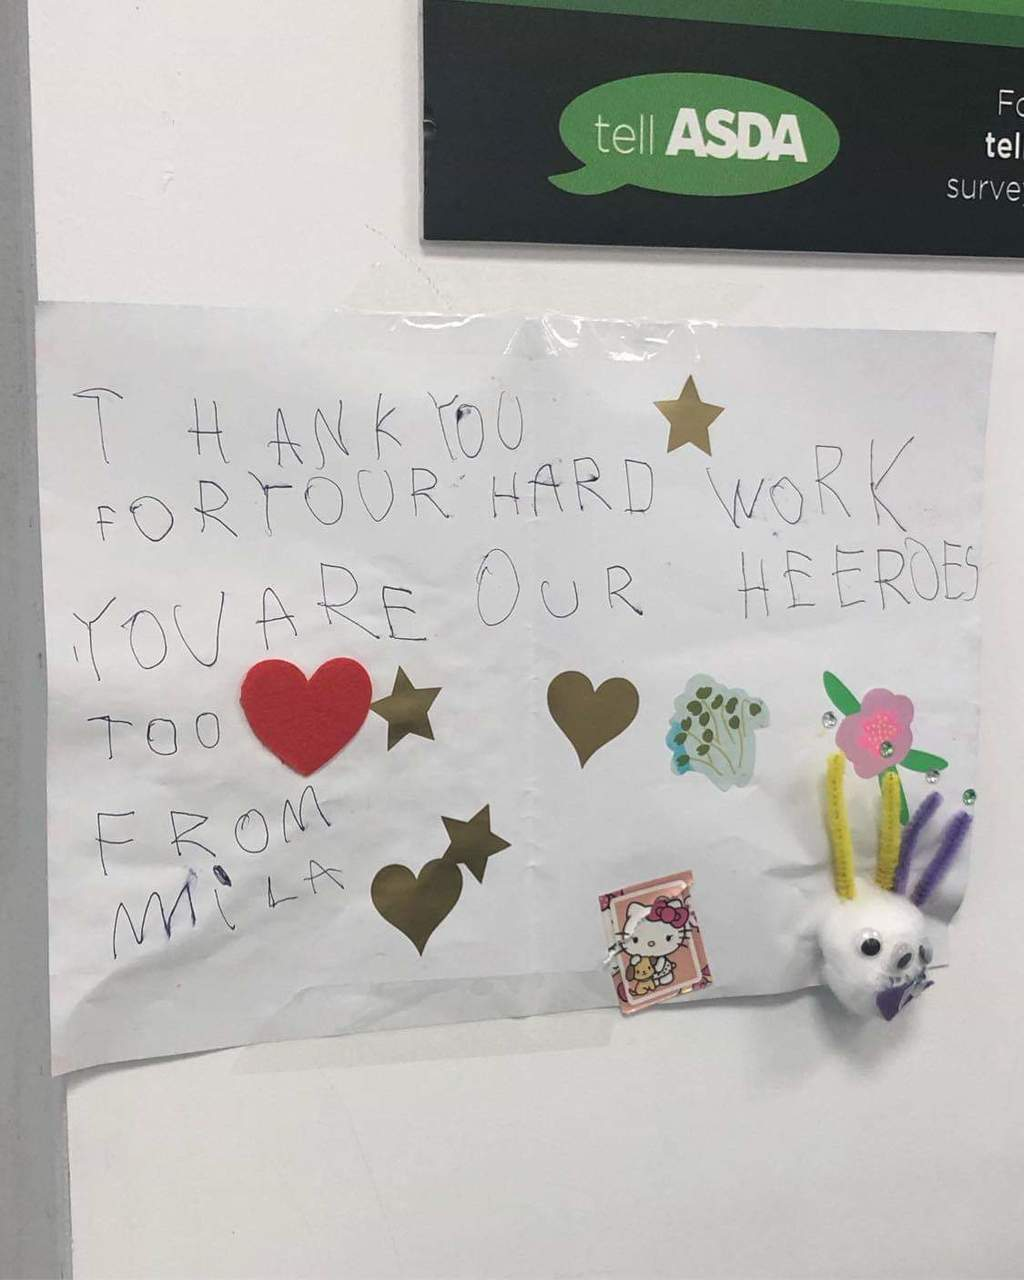 Thank you from Mila | Asda Canterbury